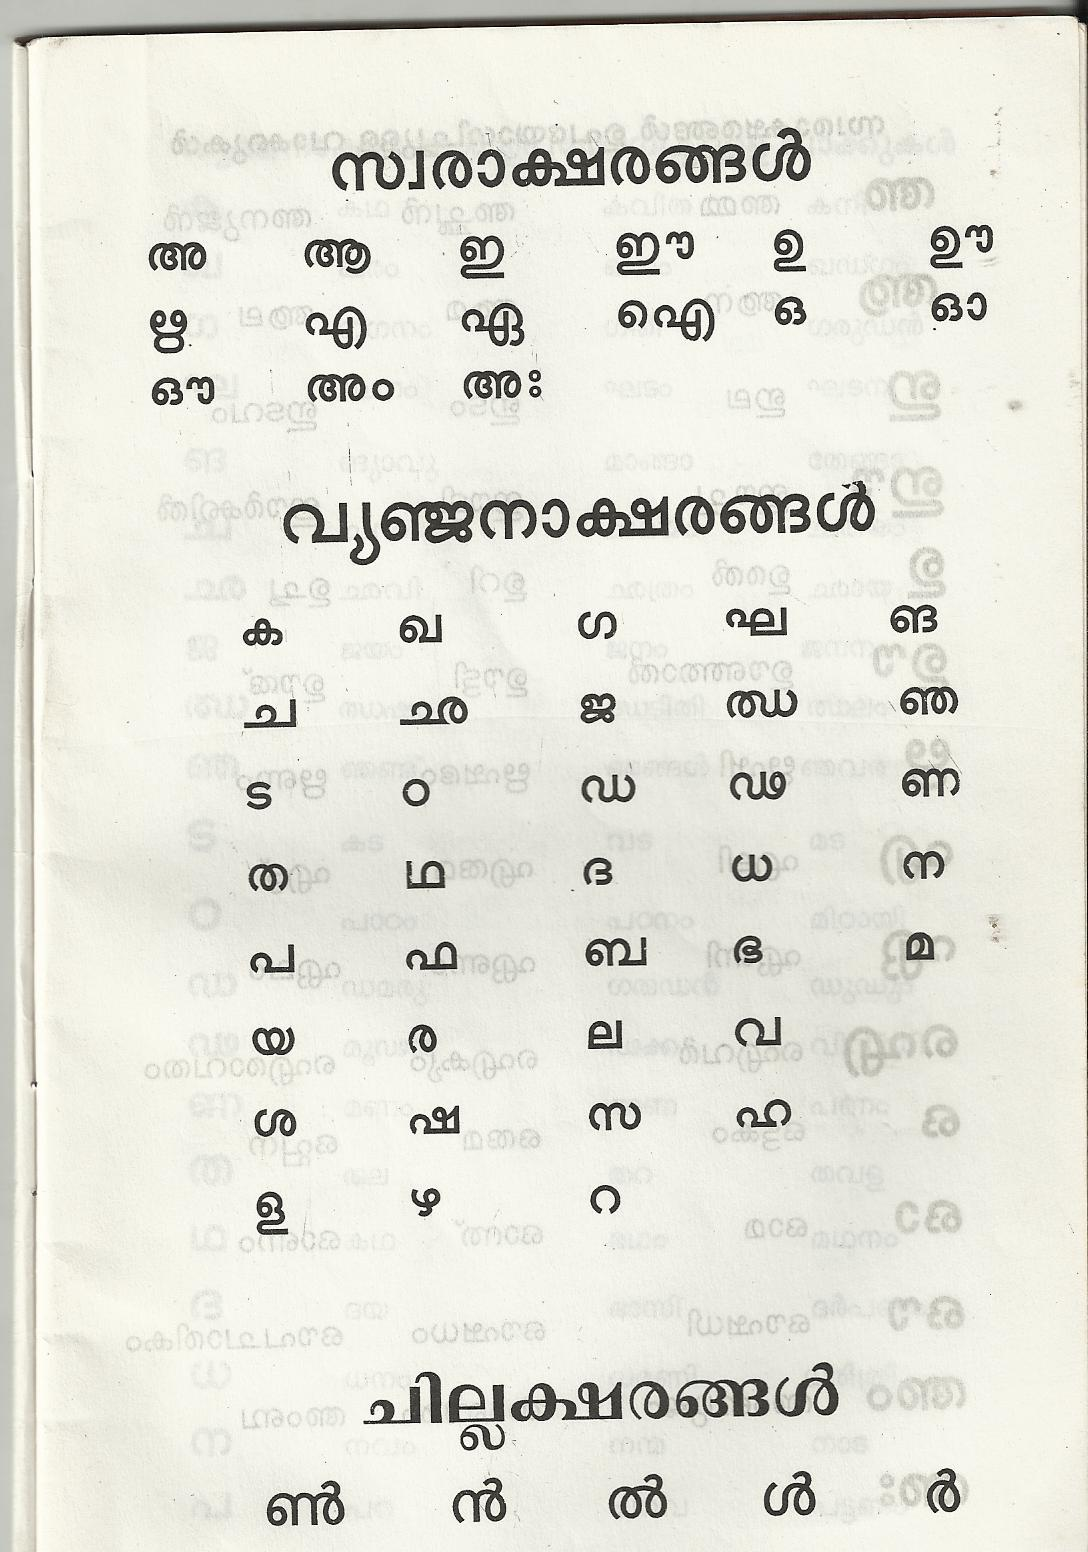 Malayalam Letters | Search Results | Calendar 2015